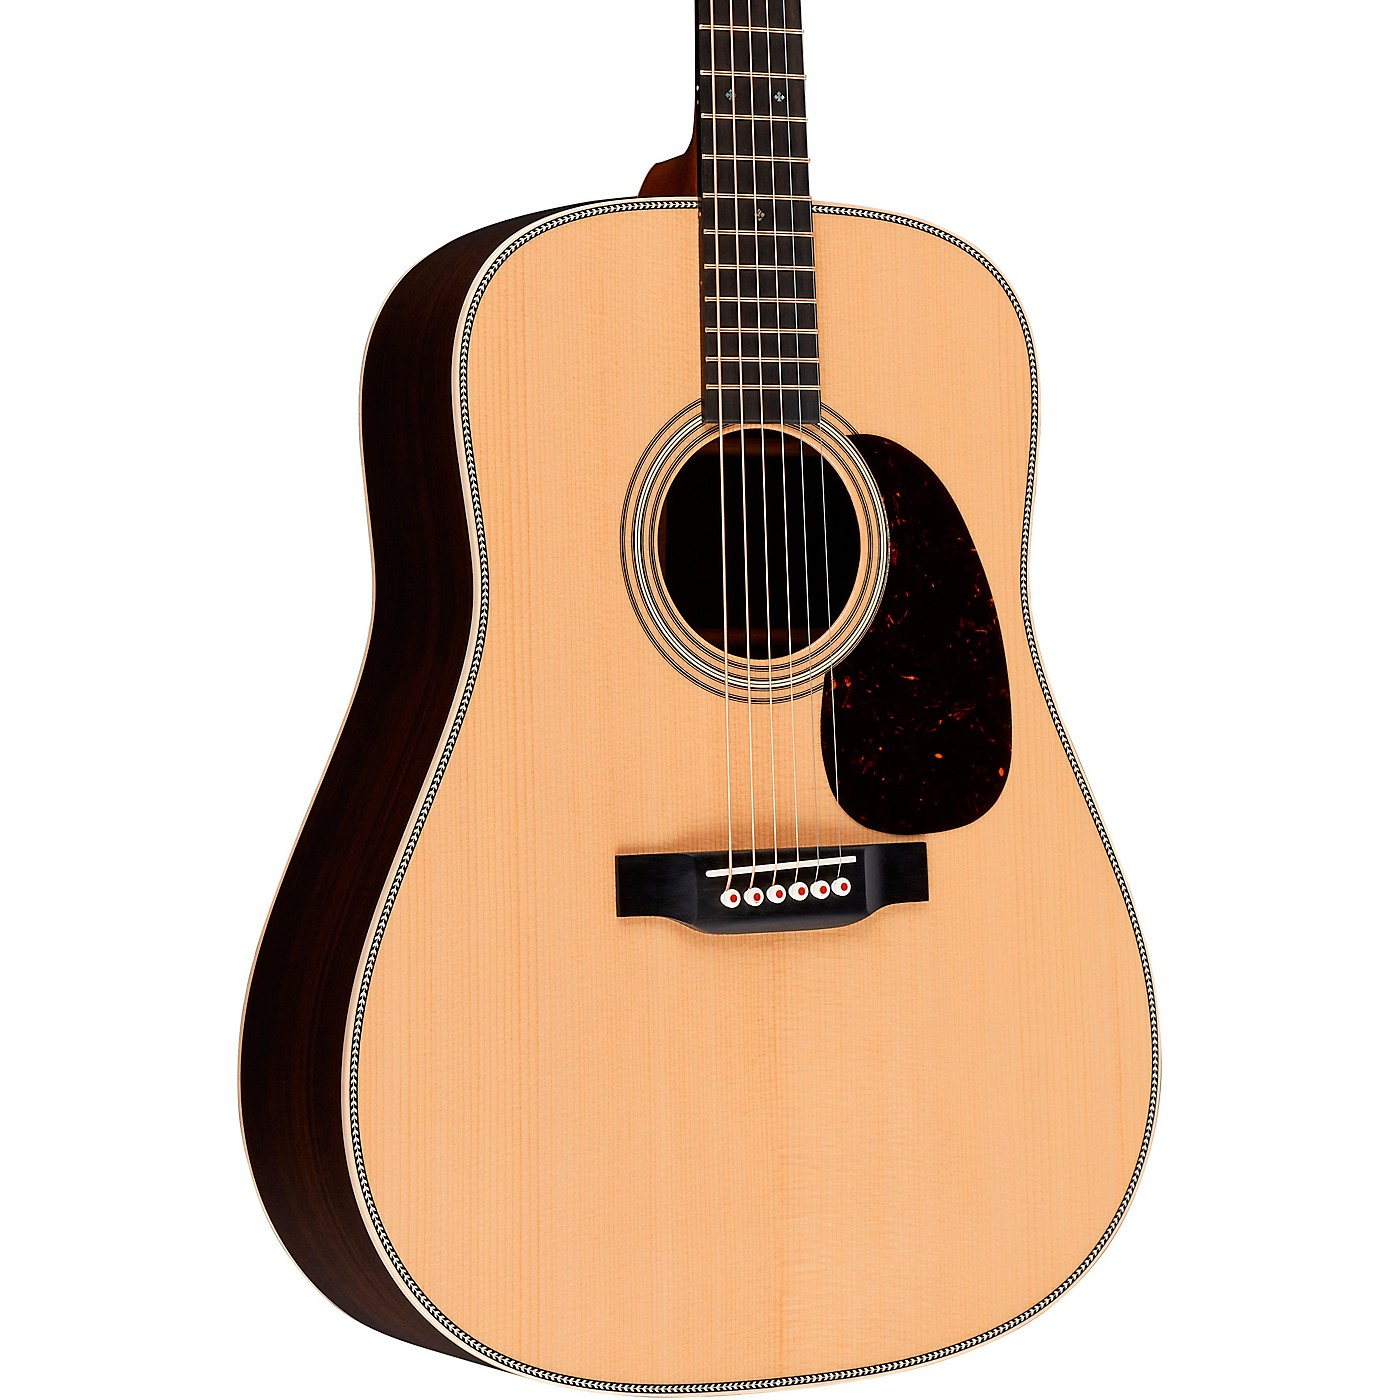 Martin D-28 Modern Deluxe Dreadnought Acoustic Guitar thumbnail